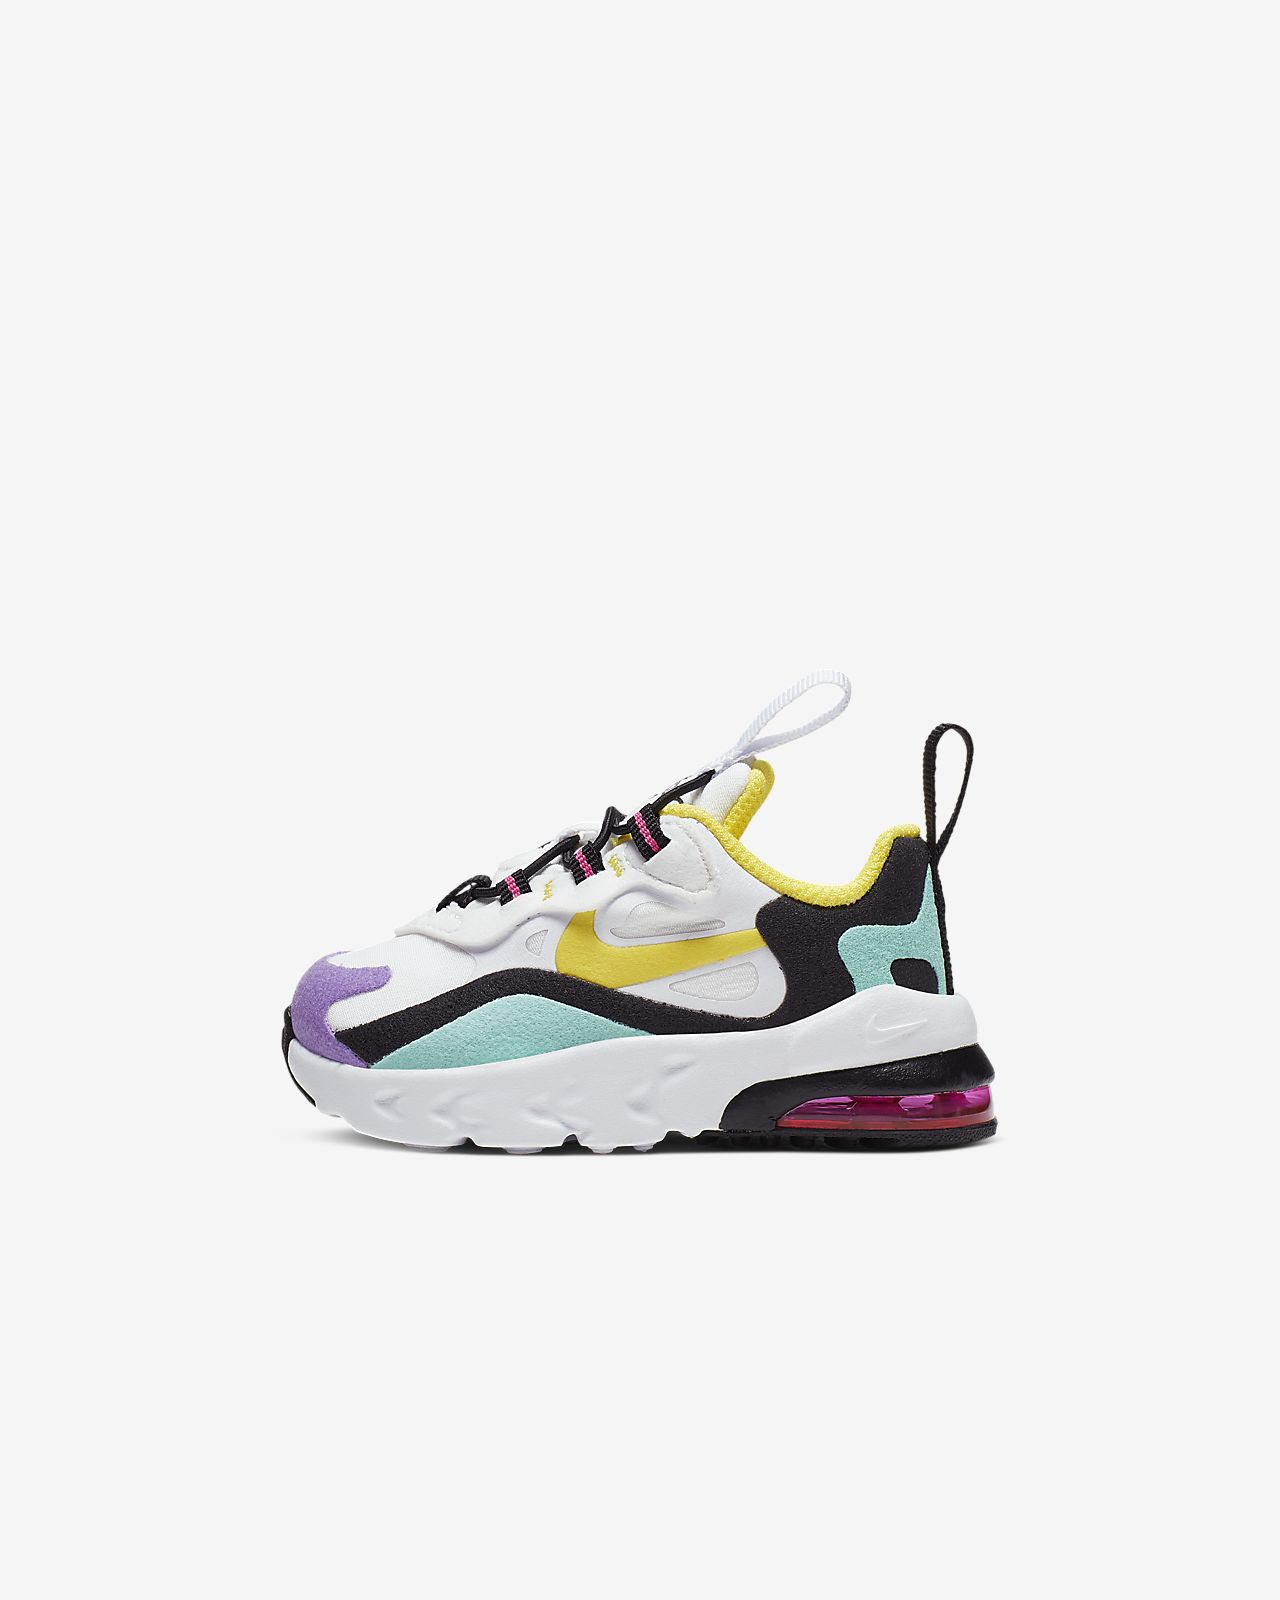 Nike Air Max 270 RT Sabatilles - Nadó i infant